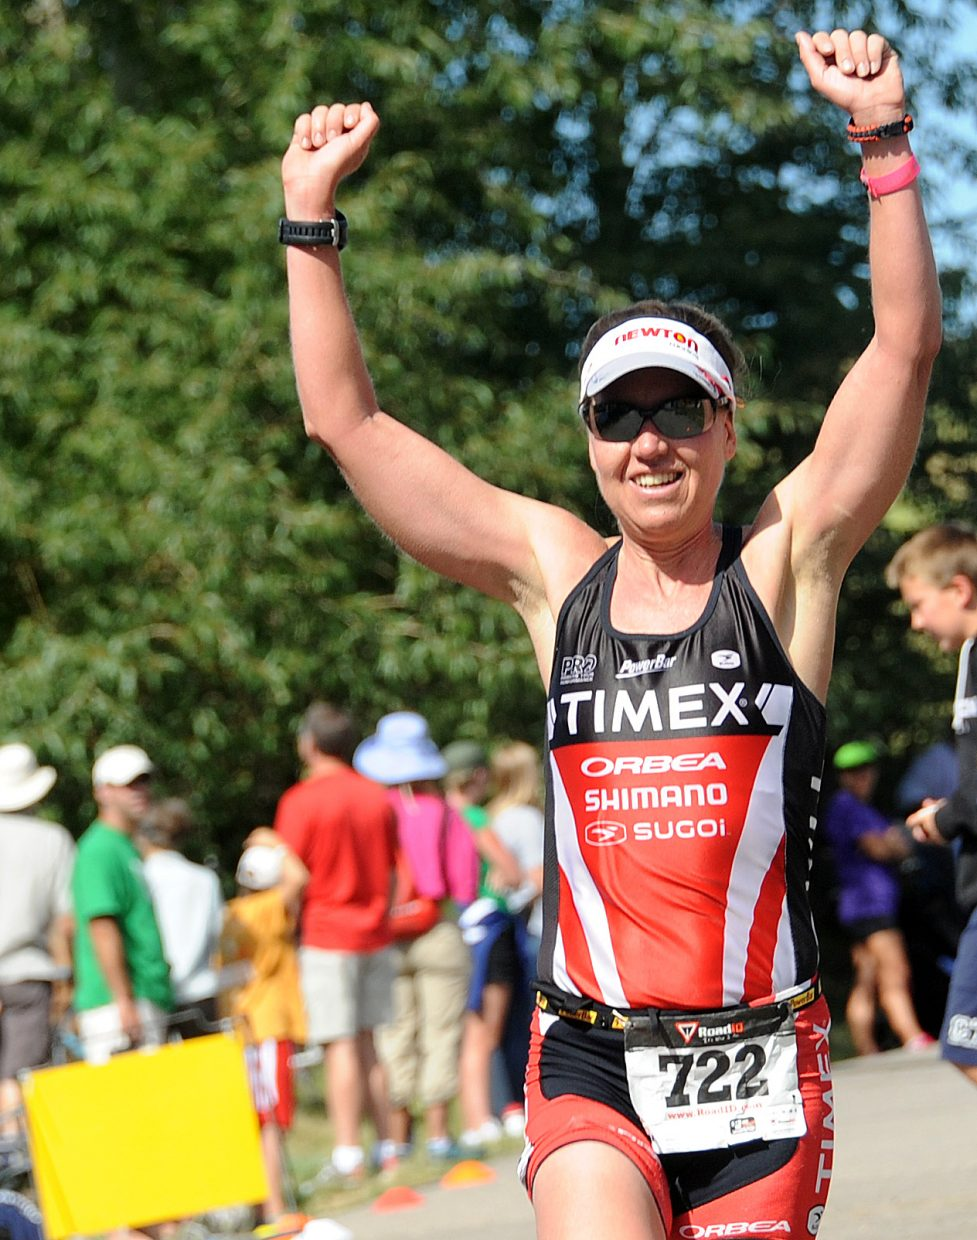 Steamboat Springs Triathlon women's champ Wendy Mader throws up her arms as she nears the finish line of Sunday's race. The long-time triathlon veteran competed in Steamboat for the first time.